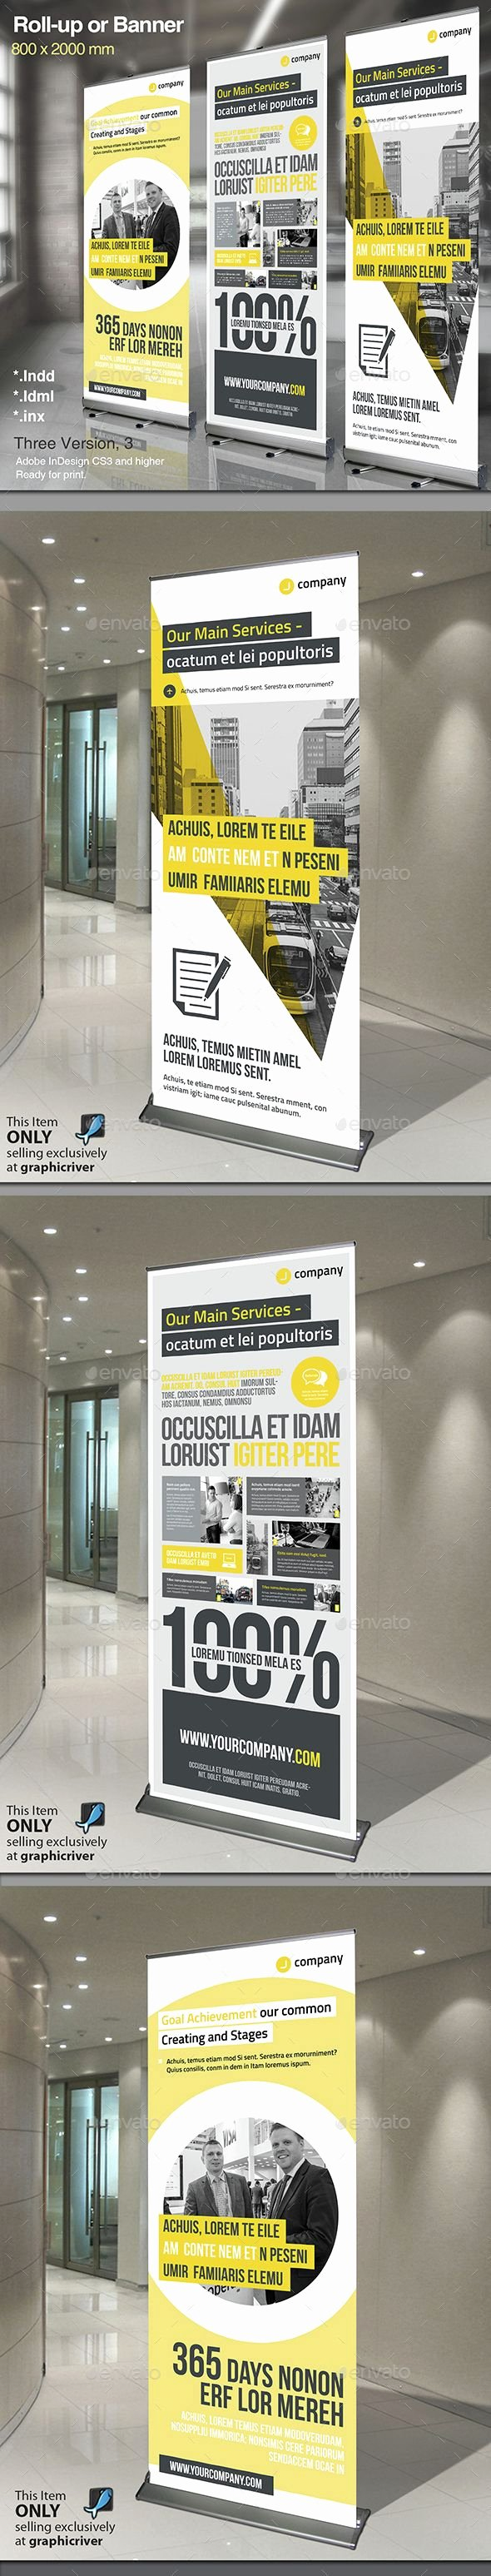 Pop Up Banner Template Inspirational Pin by Best Graphic Design On Roll Up Banner Templates